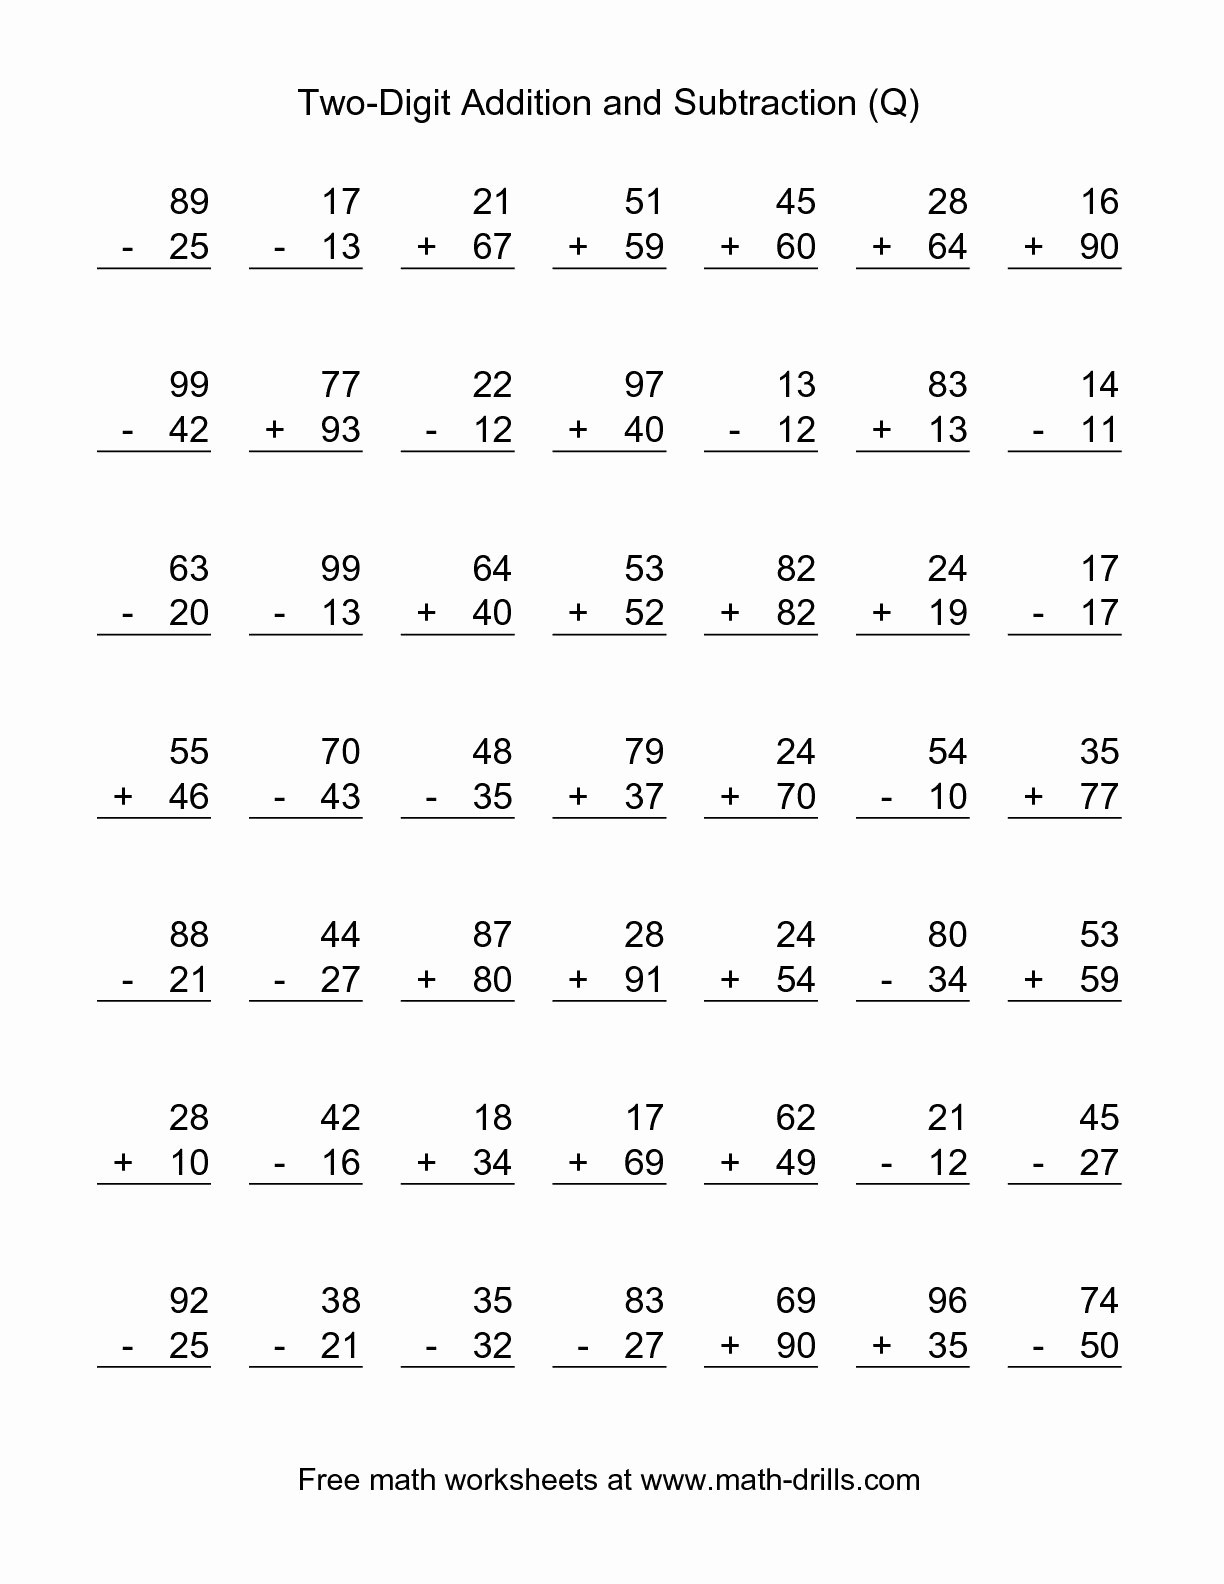 Printable Second Grade Math Worksheets To Free Download - Math - Free Printable Second Grade Math